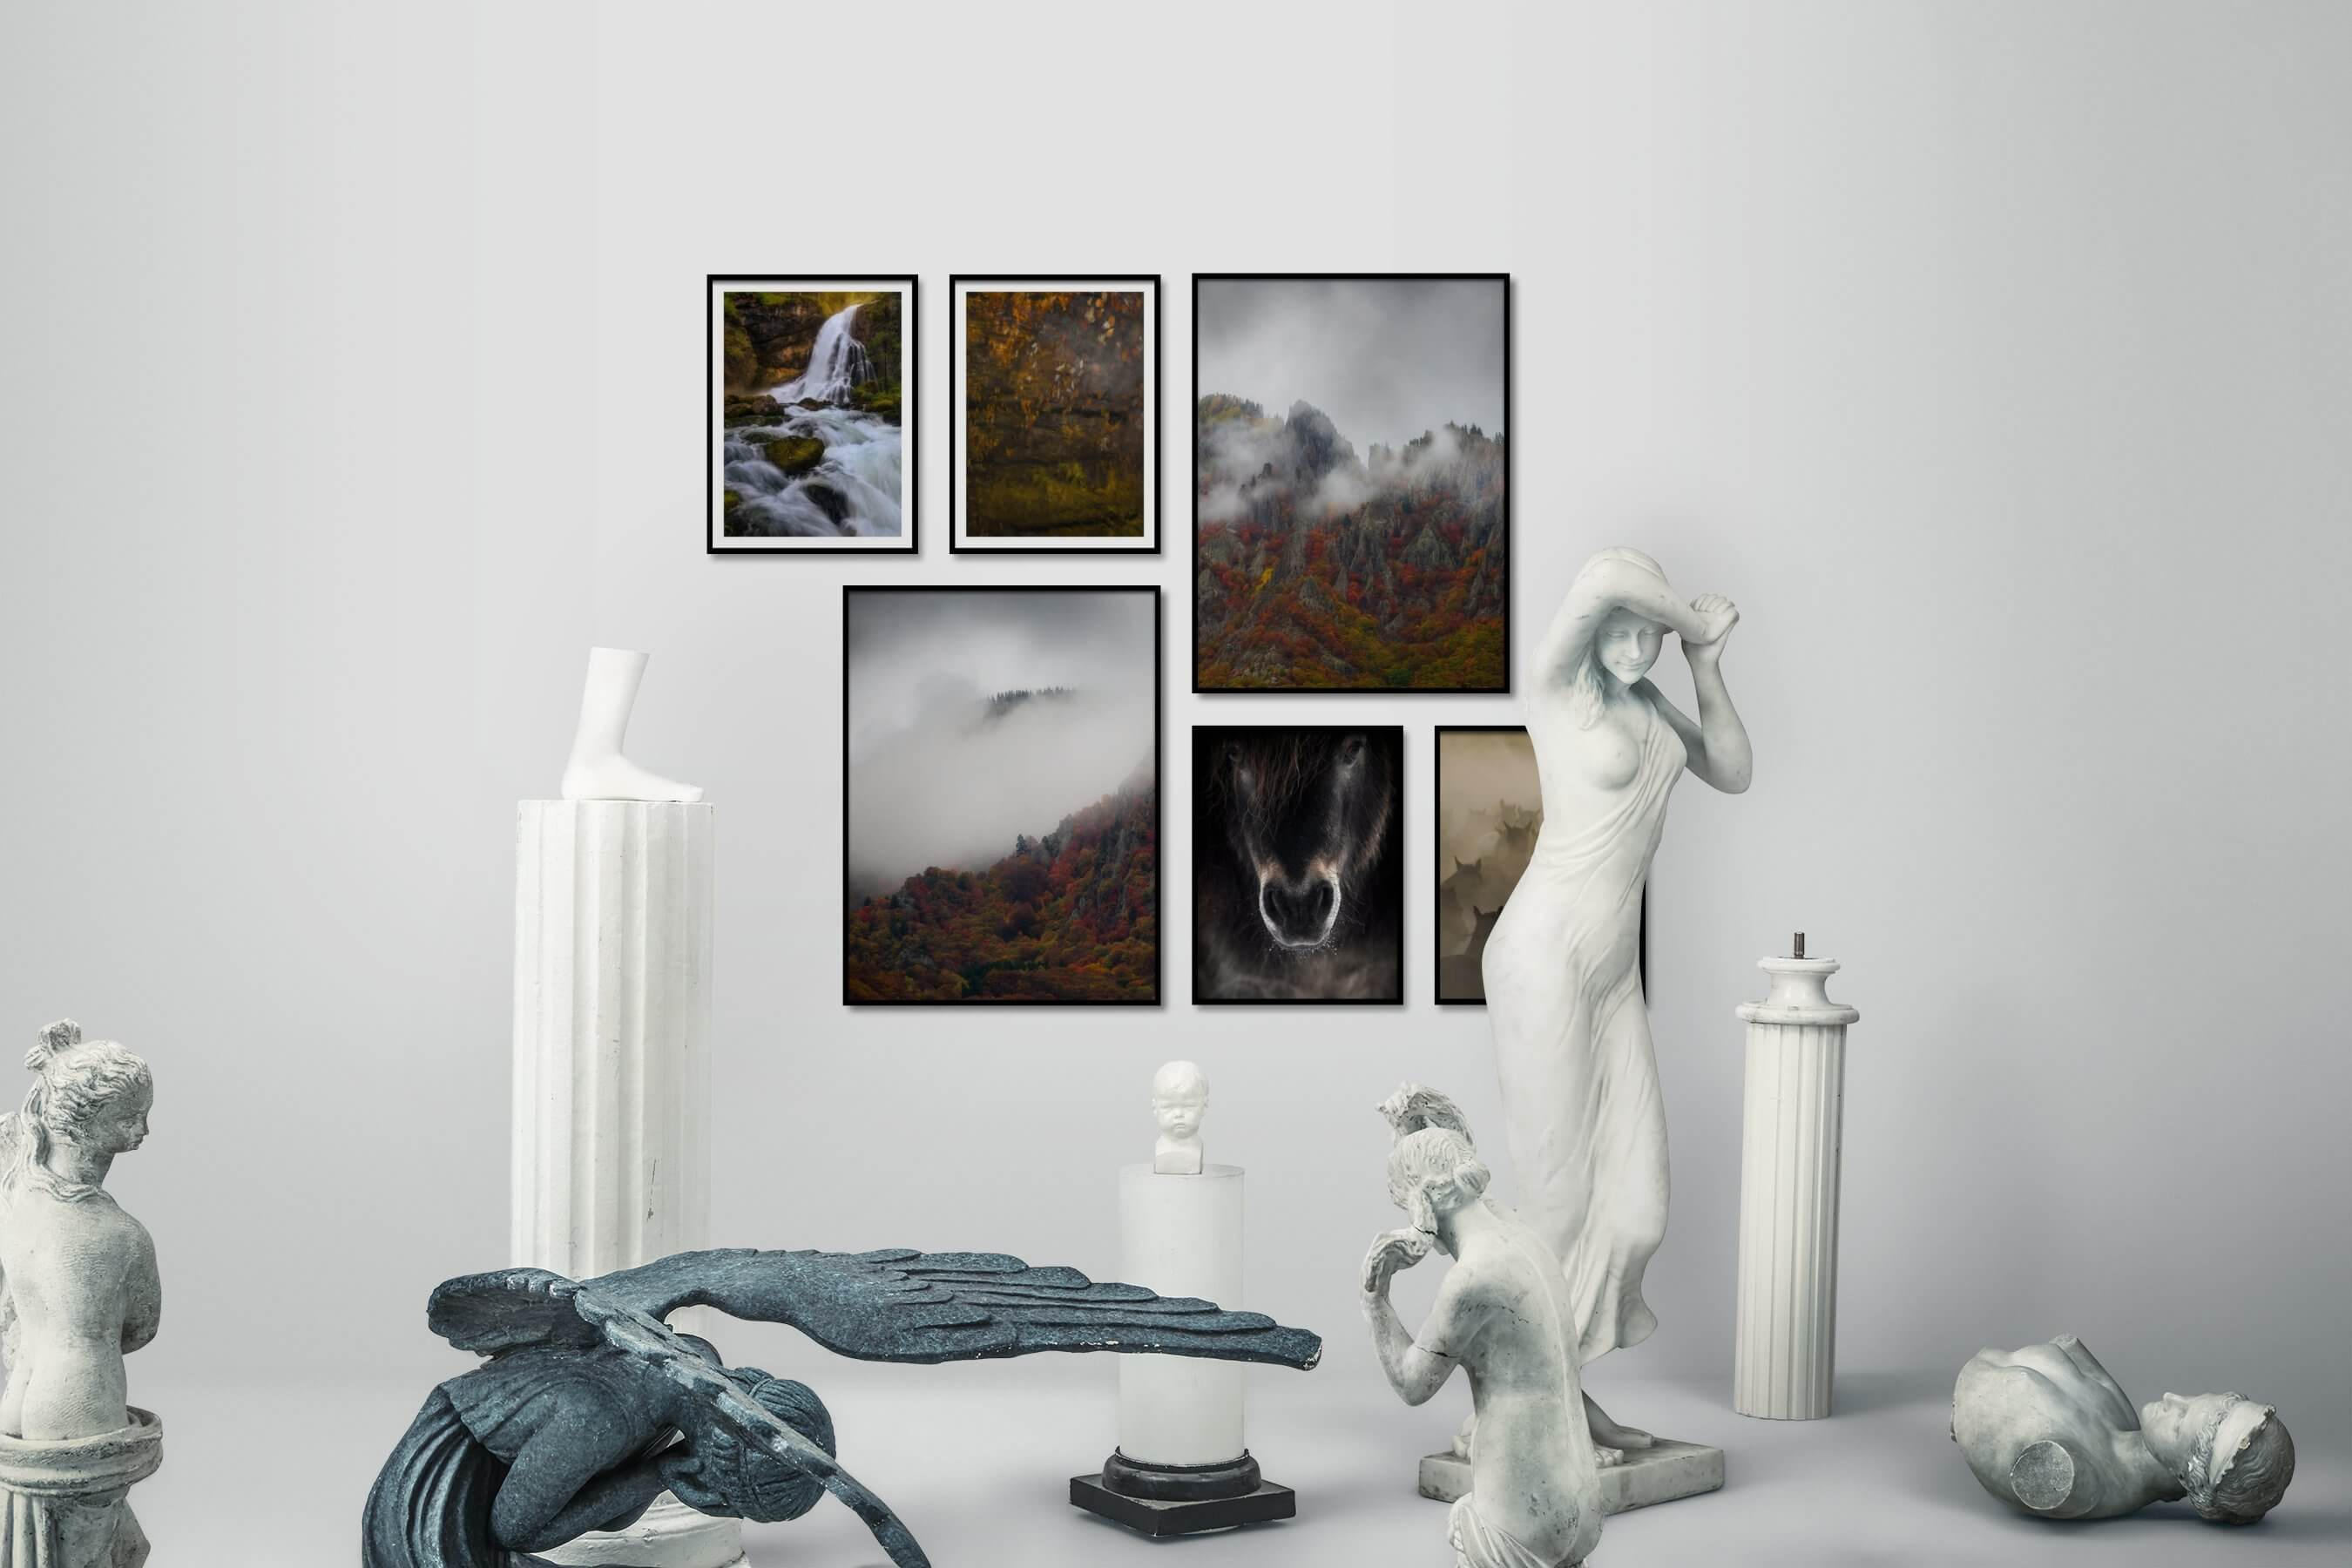 Gallery wall idea with six framed pictures arranged on a wall depicting Nature, For the Moderate, Mindfulness, Animals, and Country Life